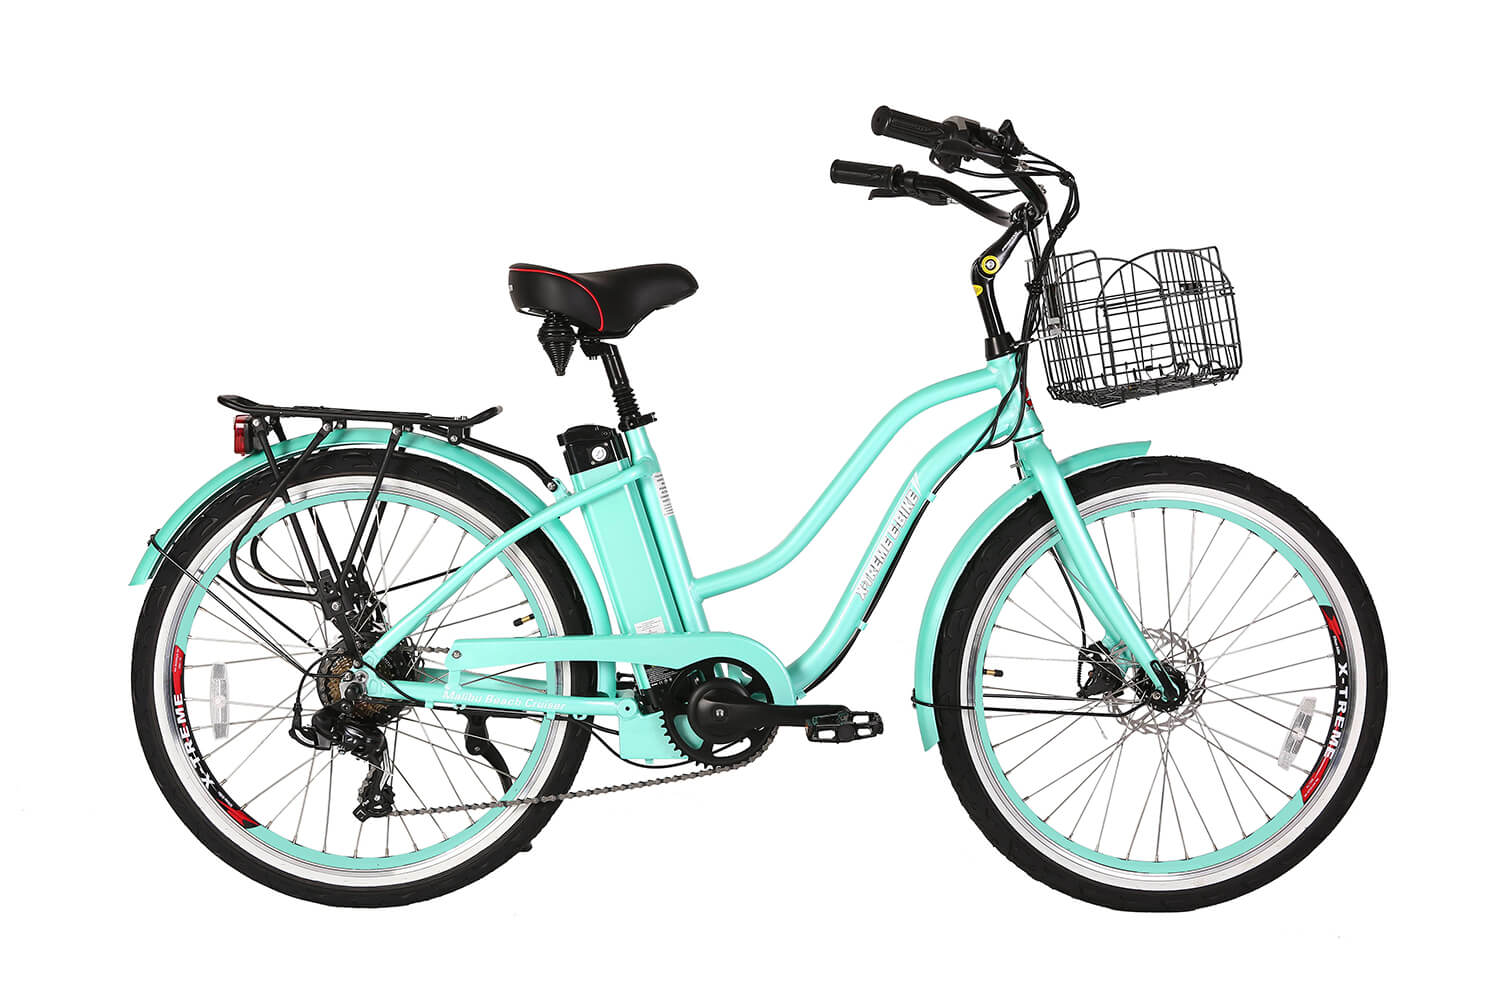 X-Treme Malibu Elite 24 Volt Beach Cruiser Electric Bike